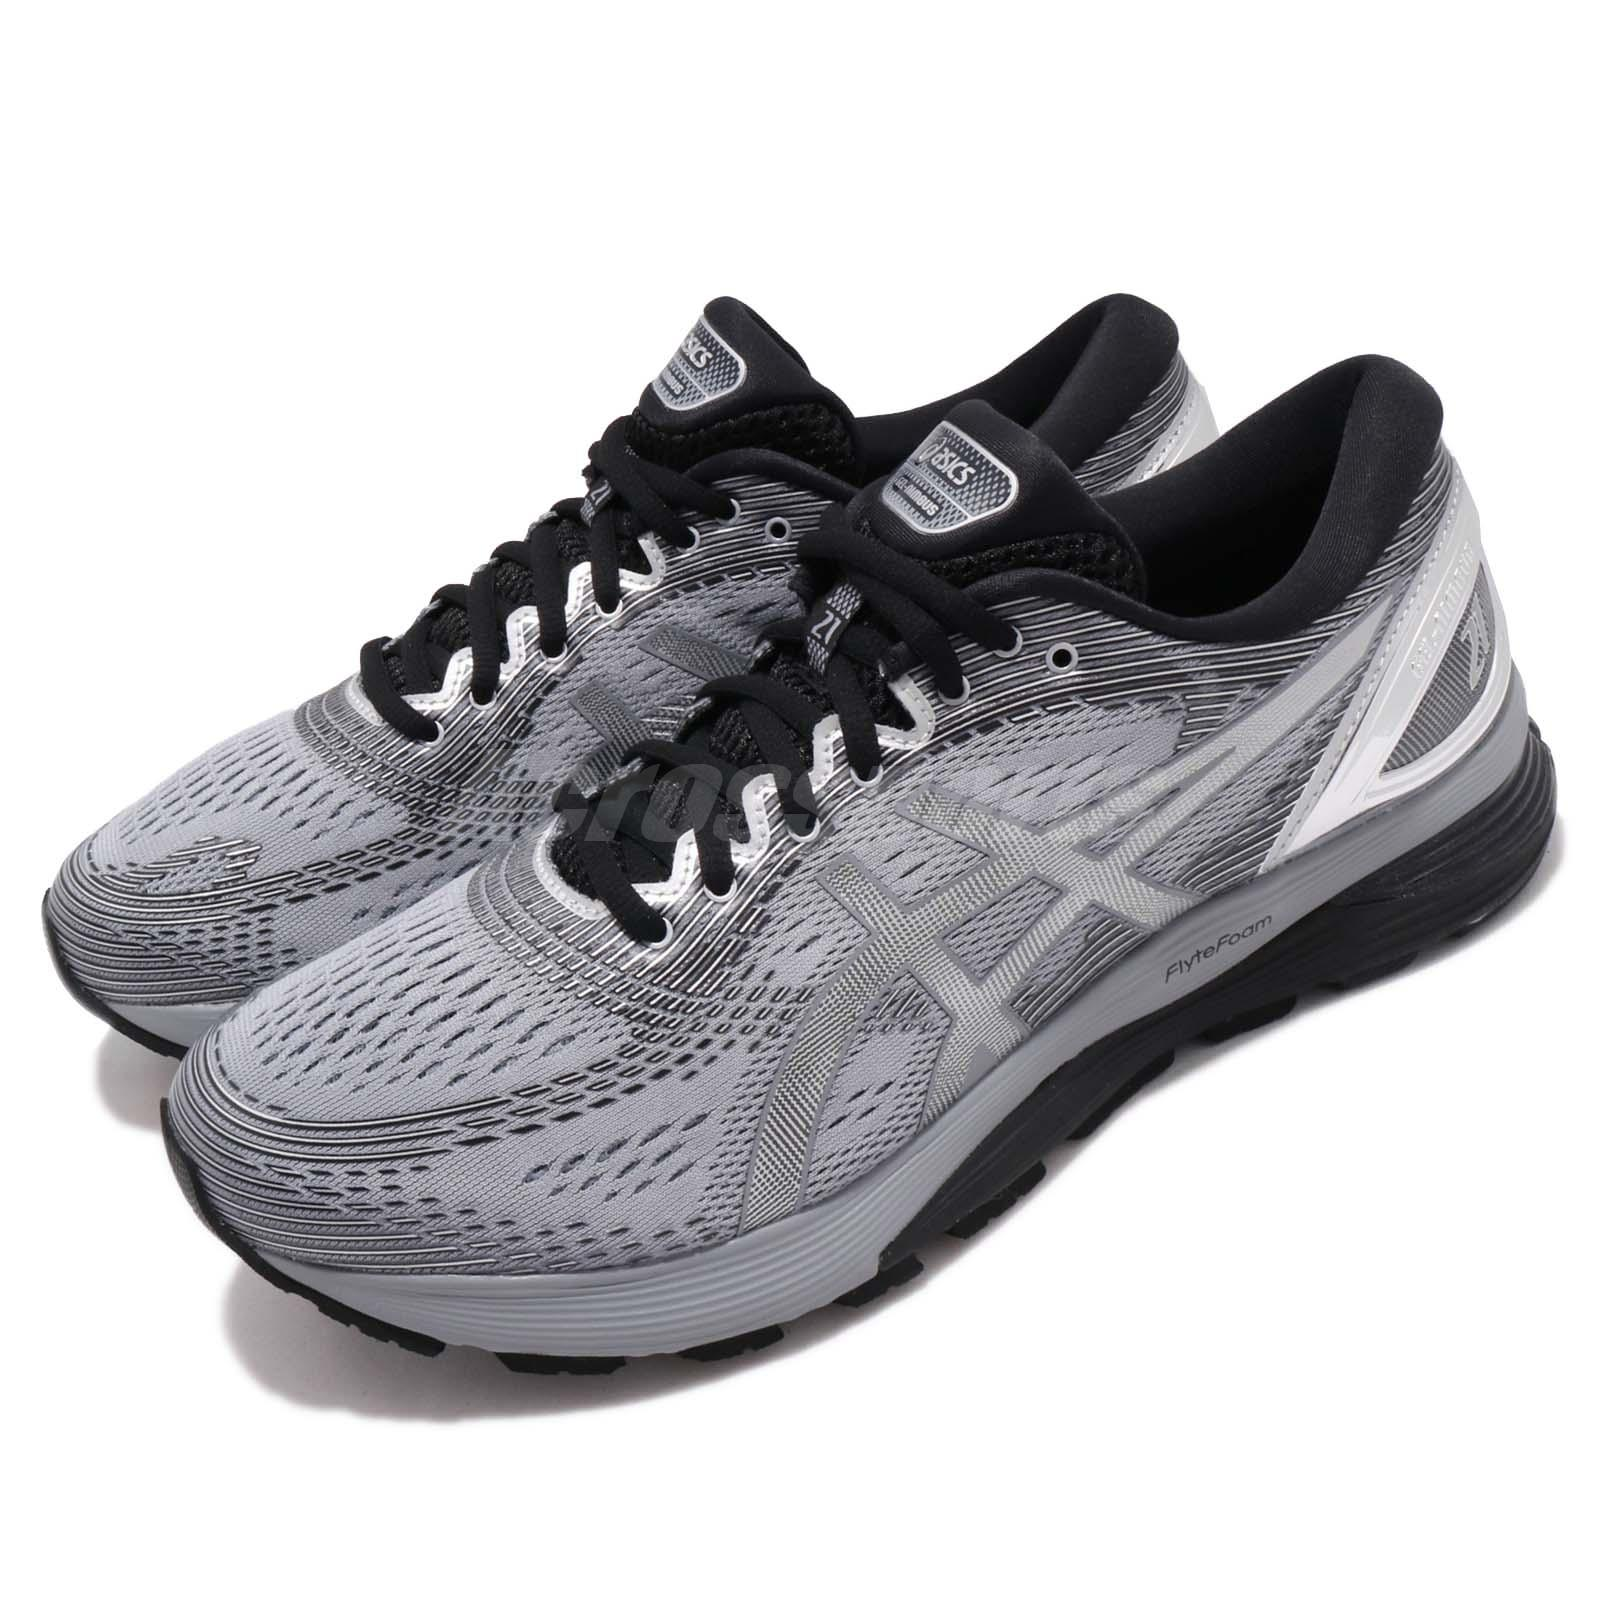 Details about Asics Gel-Nimbus 21 Platinum Sheet Rock Silver Mens Running  Shoes 1011A709-020